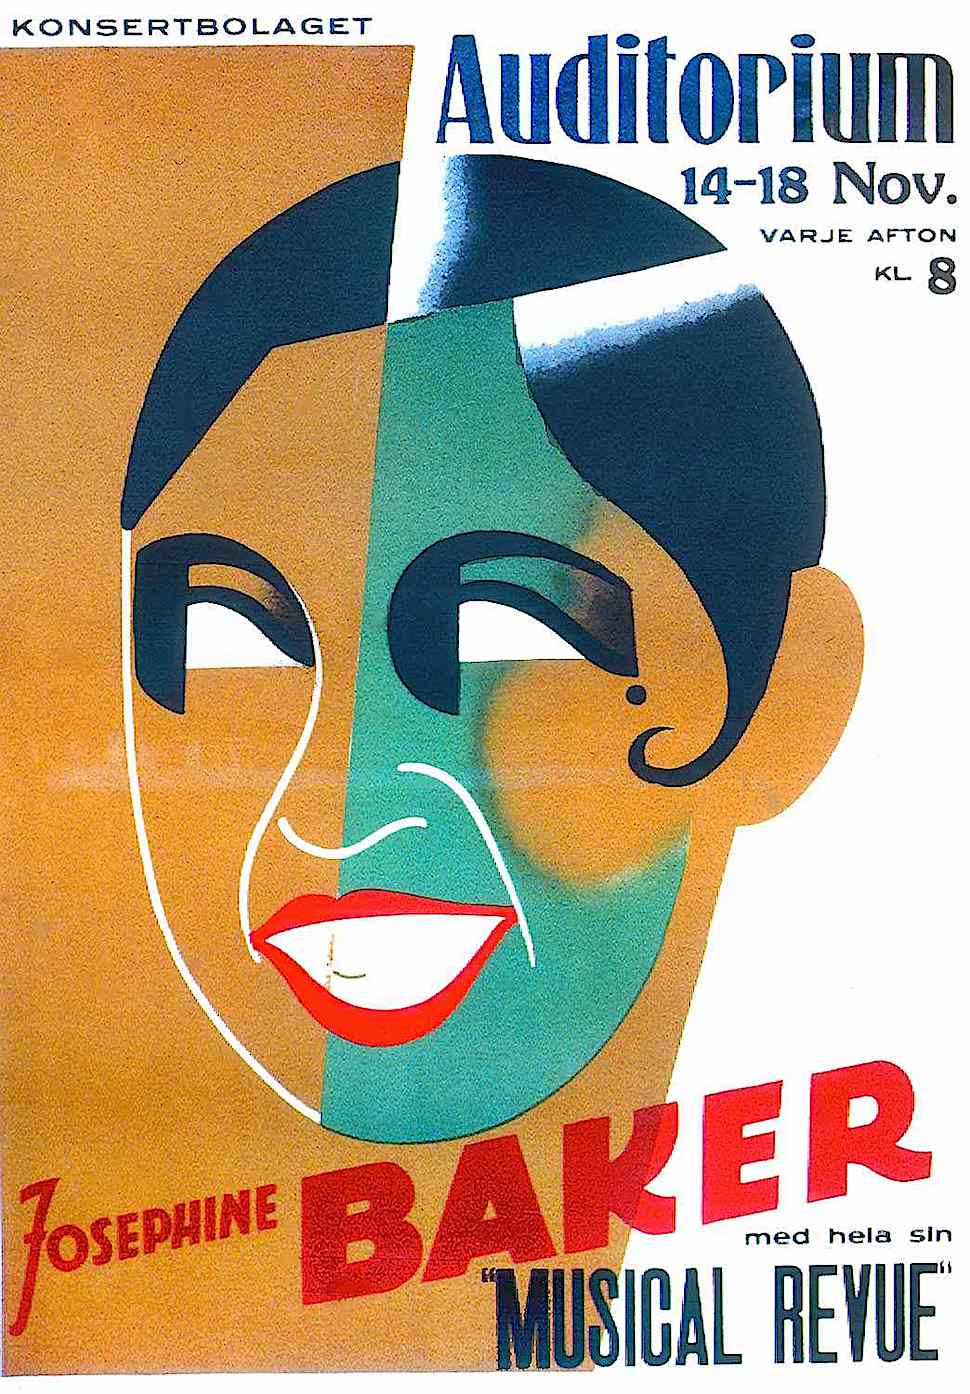 Josephine Baker Musical Review, a sensation in Europe, aided the French Resistance during World War II and was involved in USA civil rights